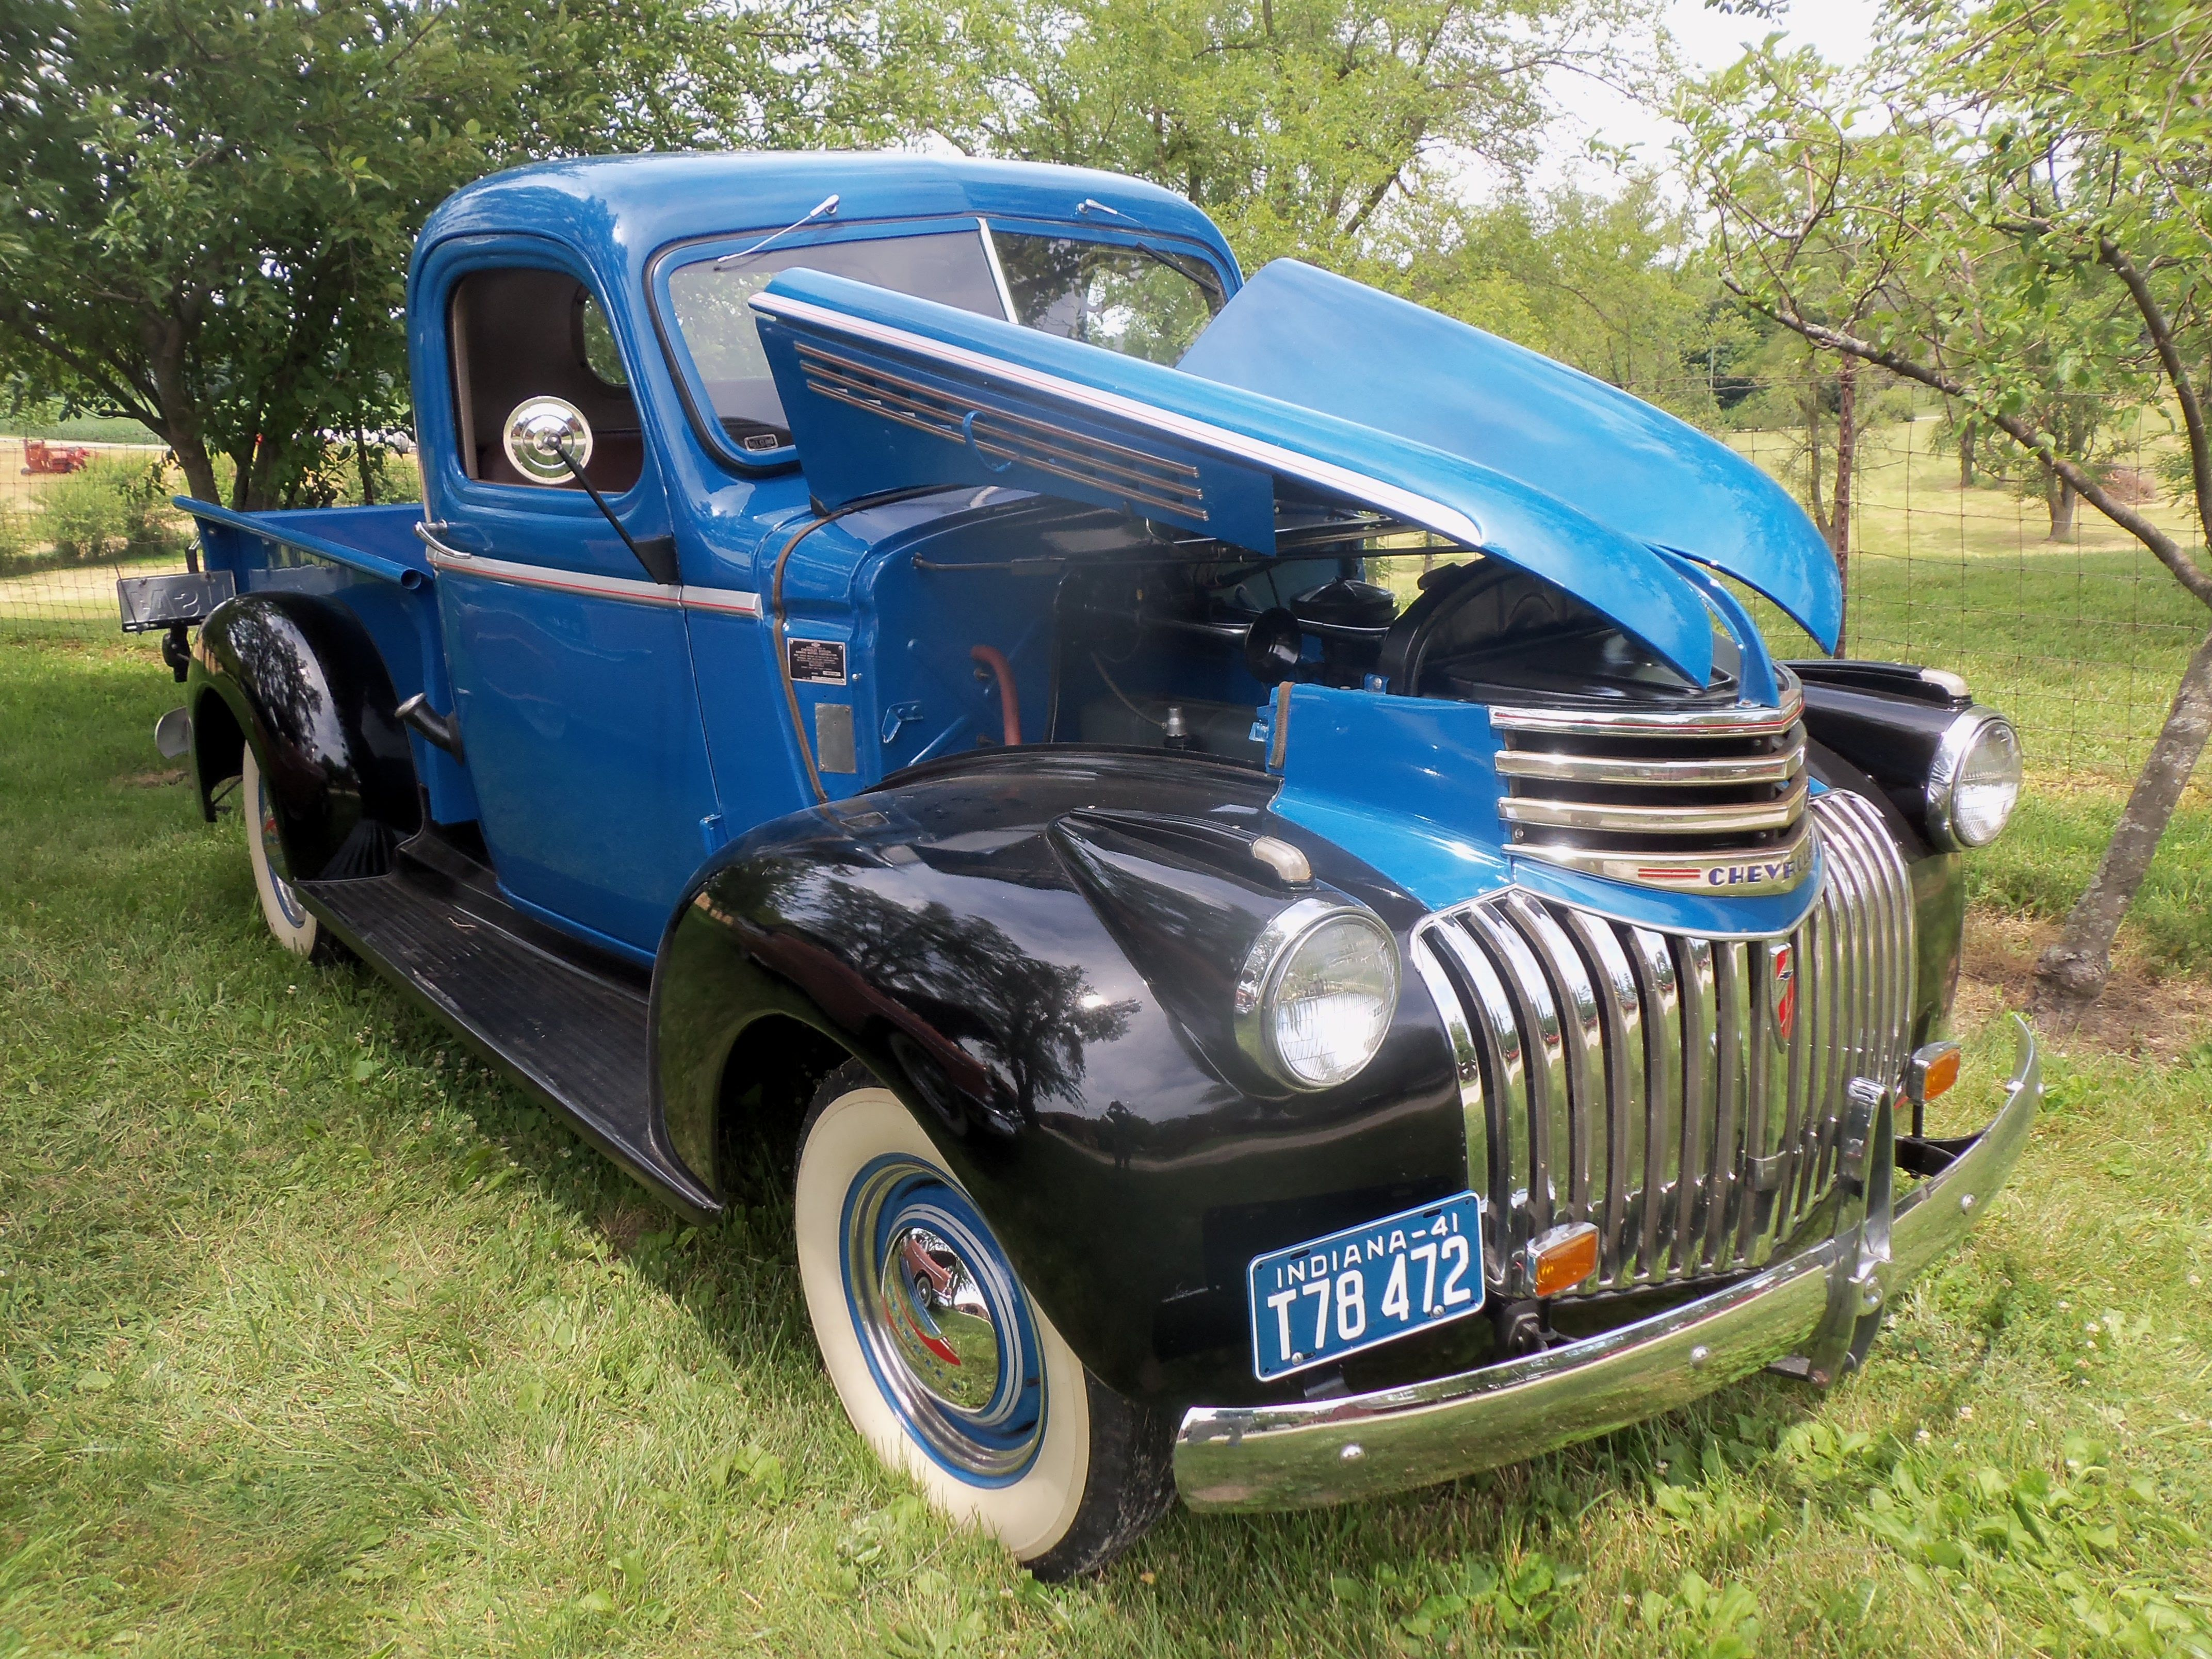 1941 1946 Chevy Truck On 1946 Chevy Wiring Diagram